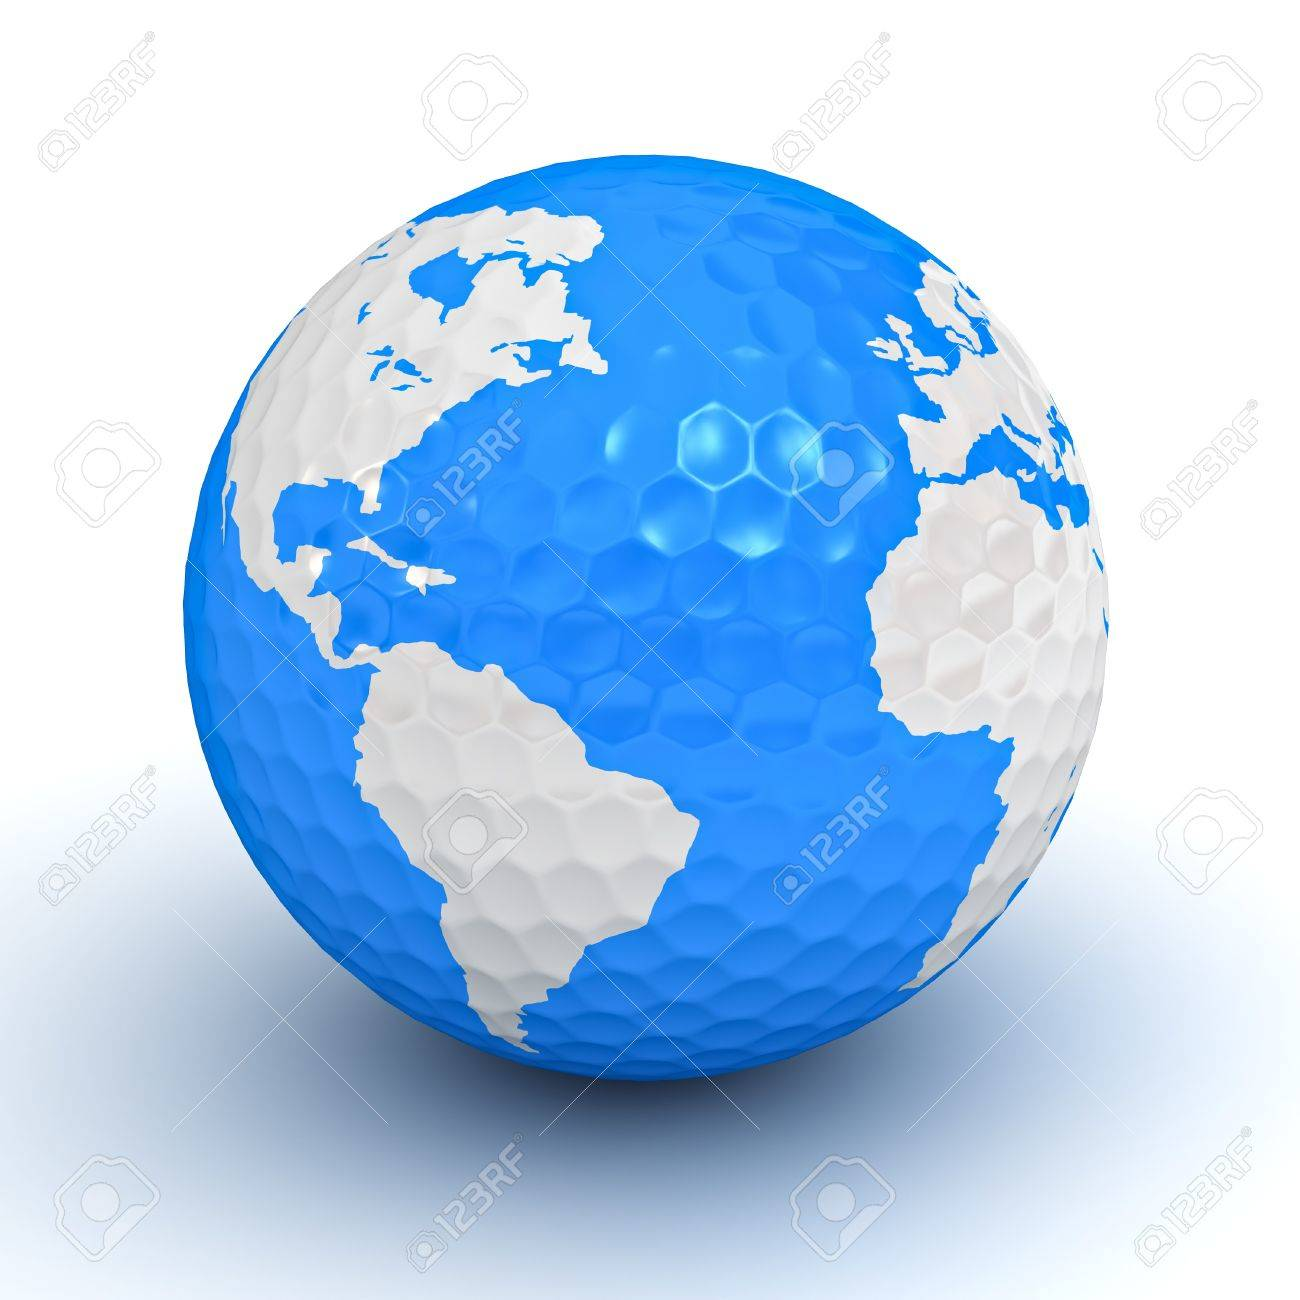 Globe map on golf ball on white background stock photo picture and globe map on golf ball on white background stock photo 14033200 gumiabroncs Images